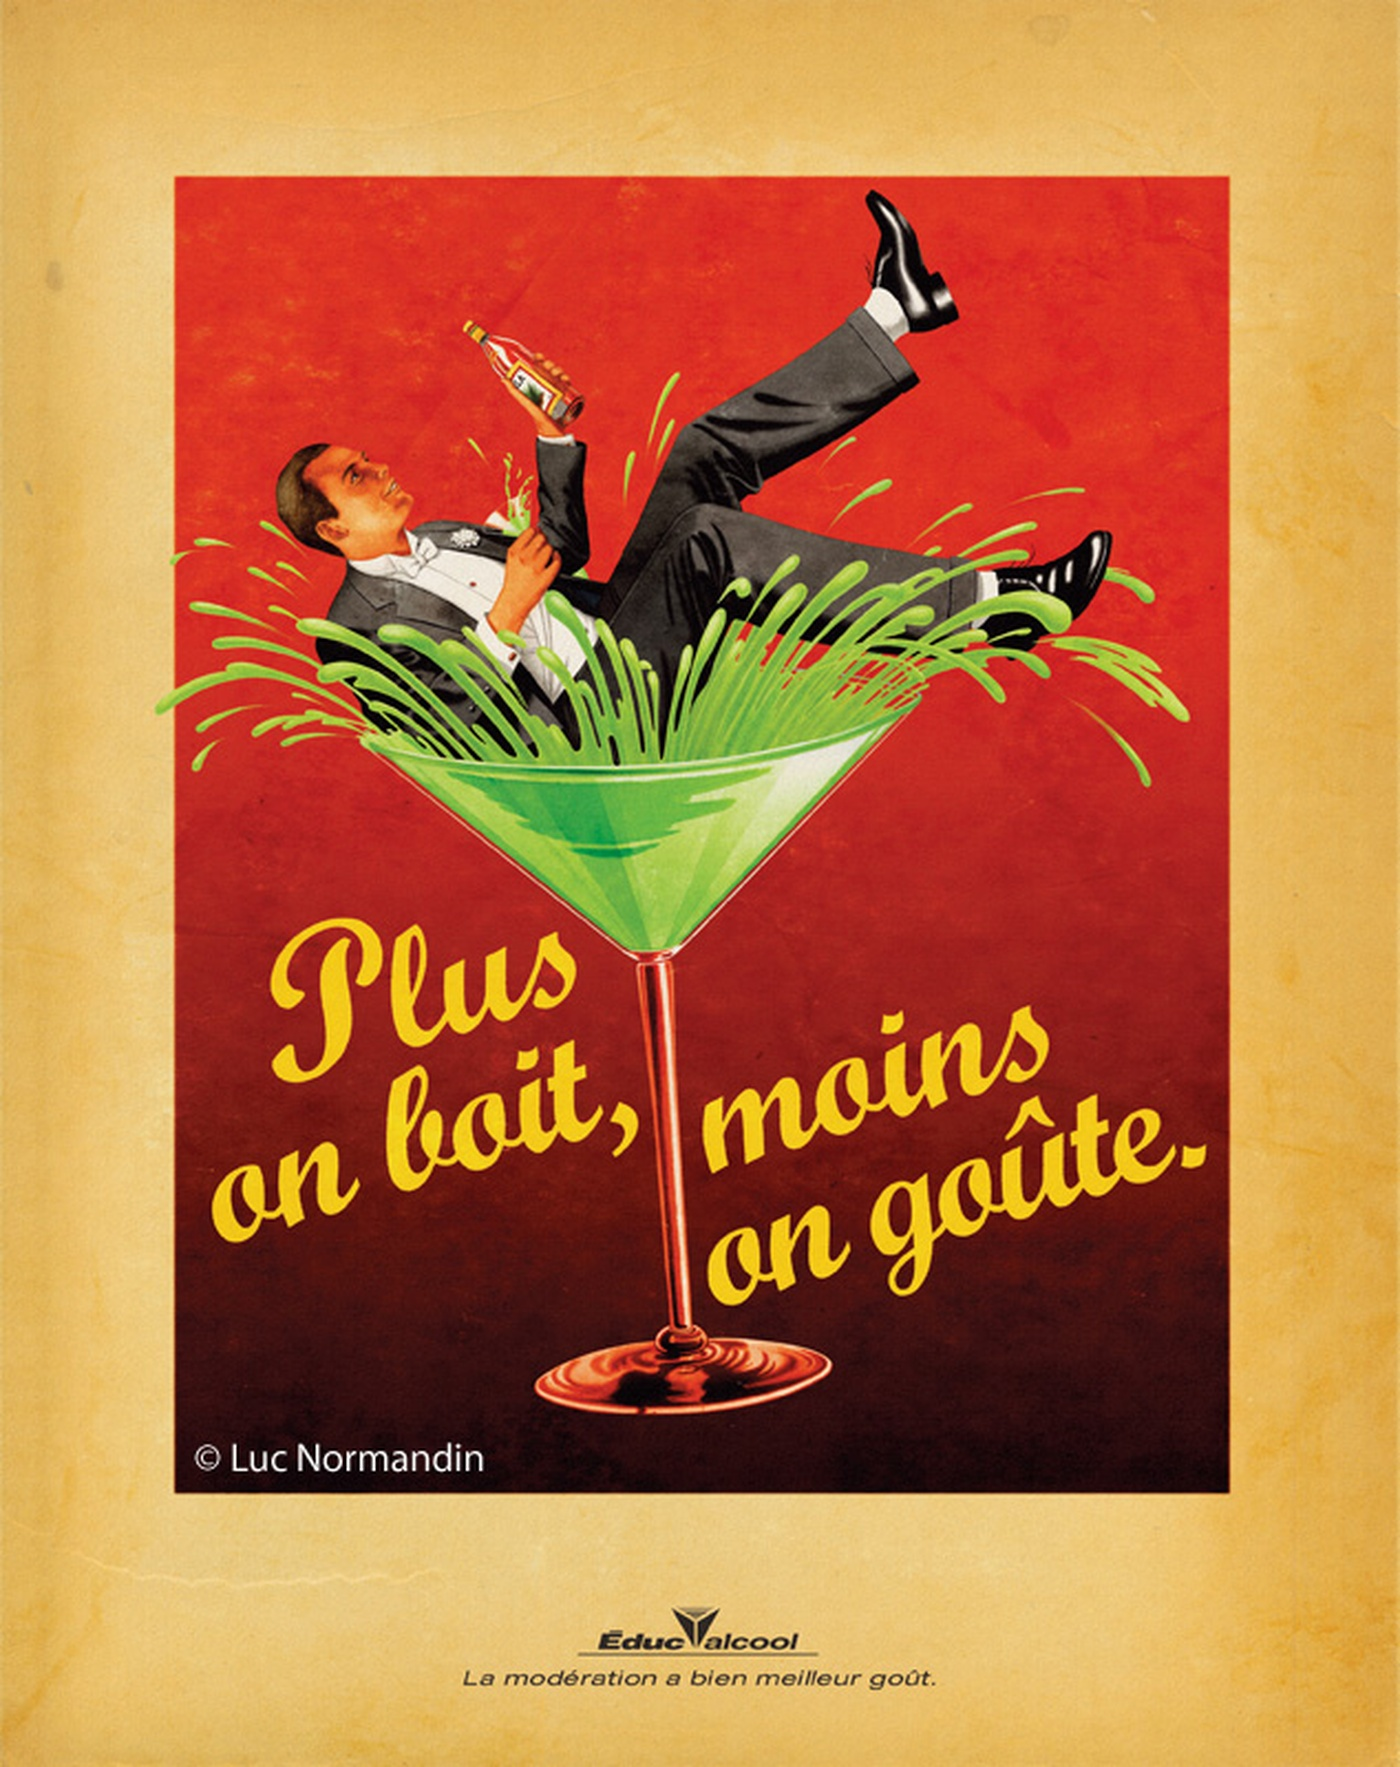 Luc Normandin - Educalcool-Martini